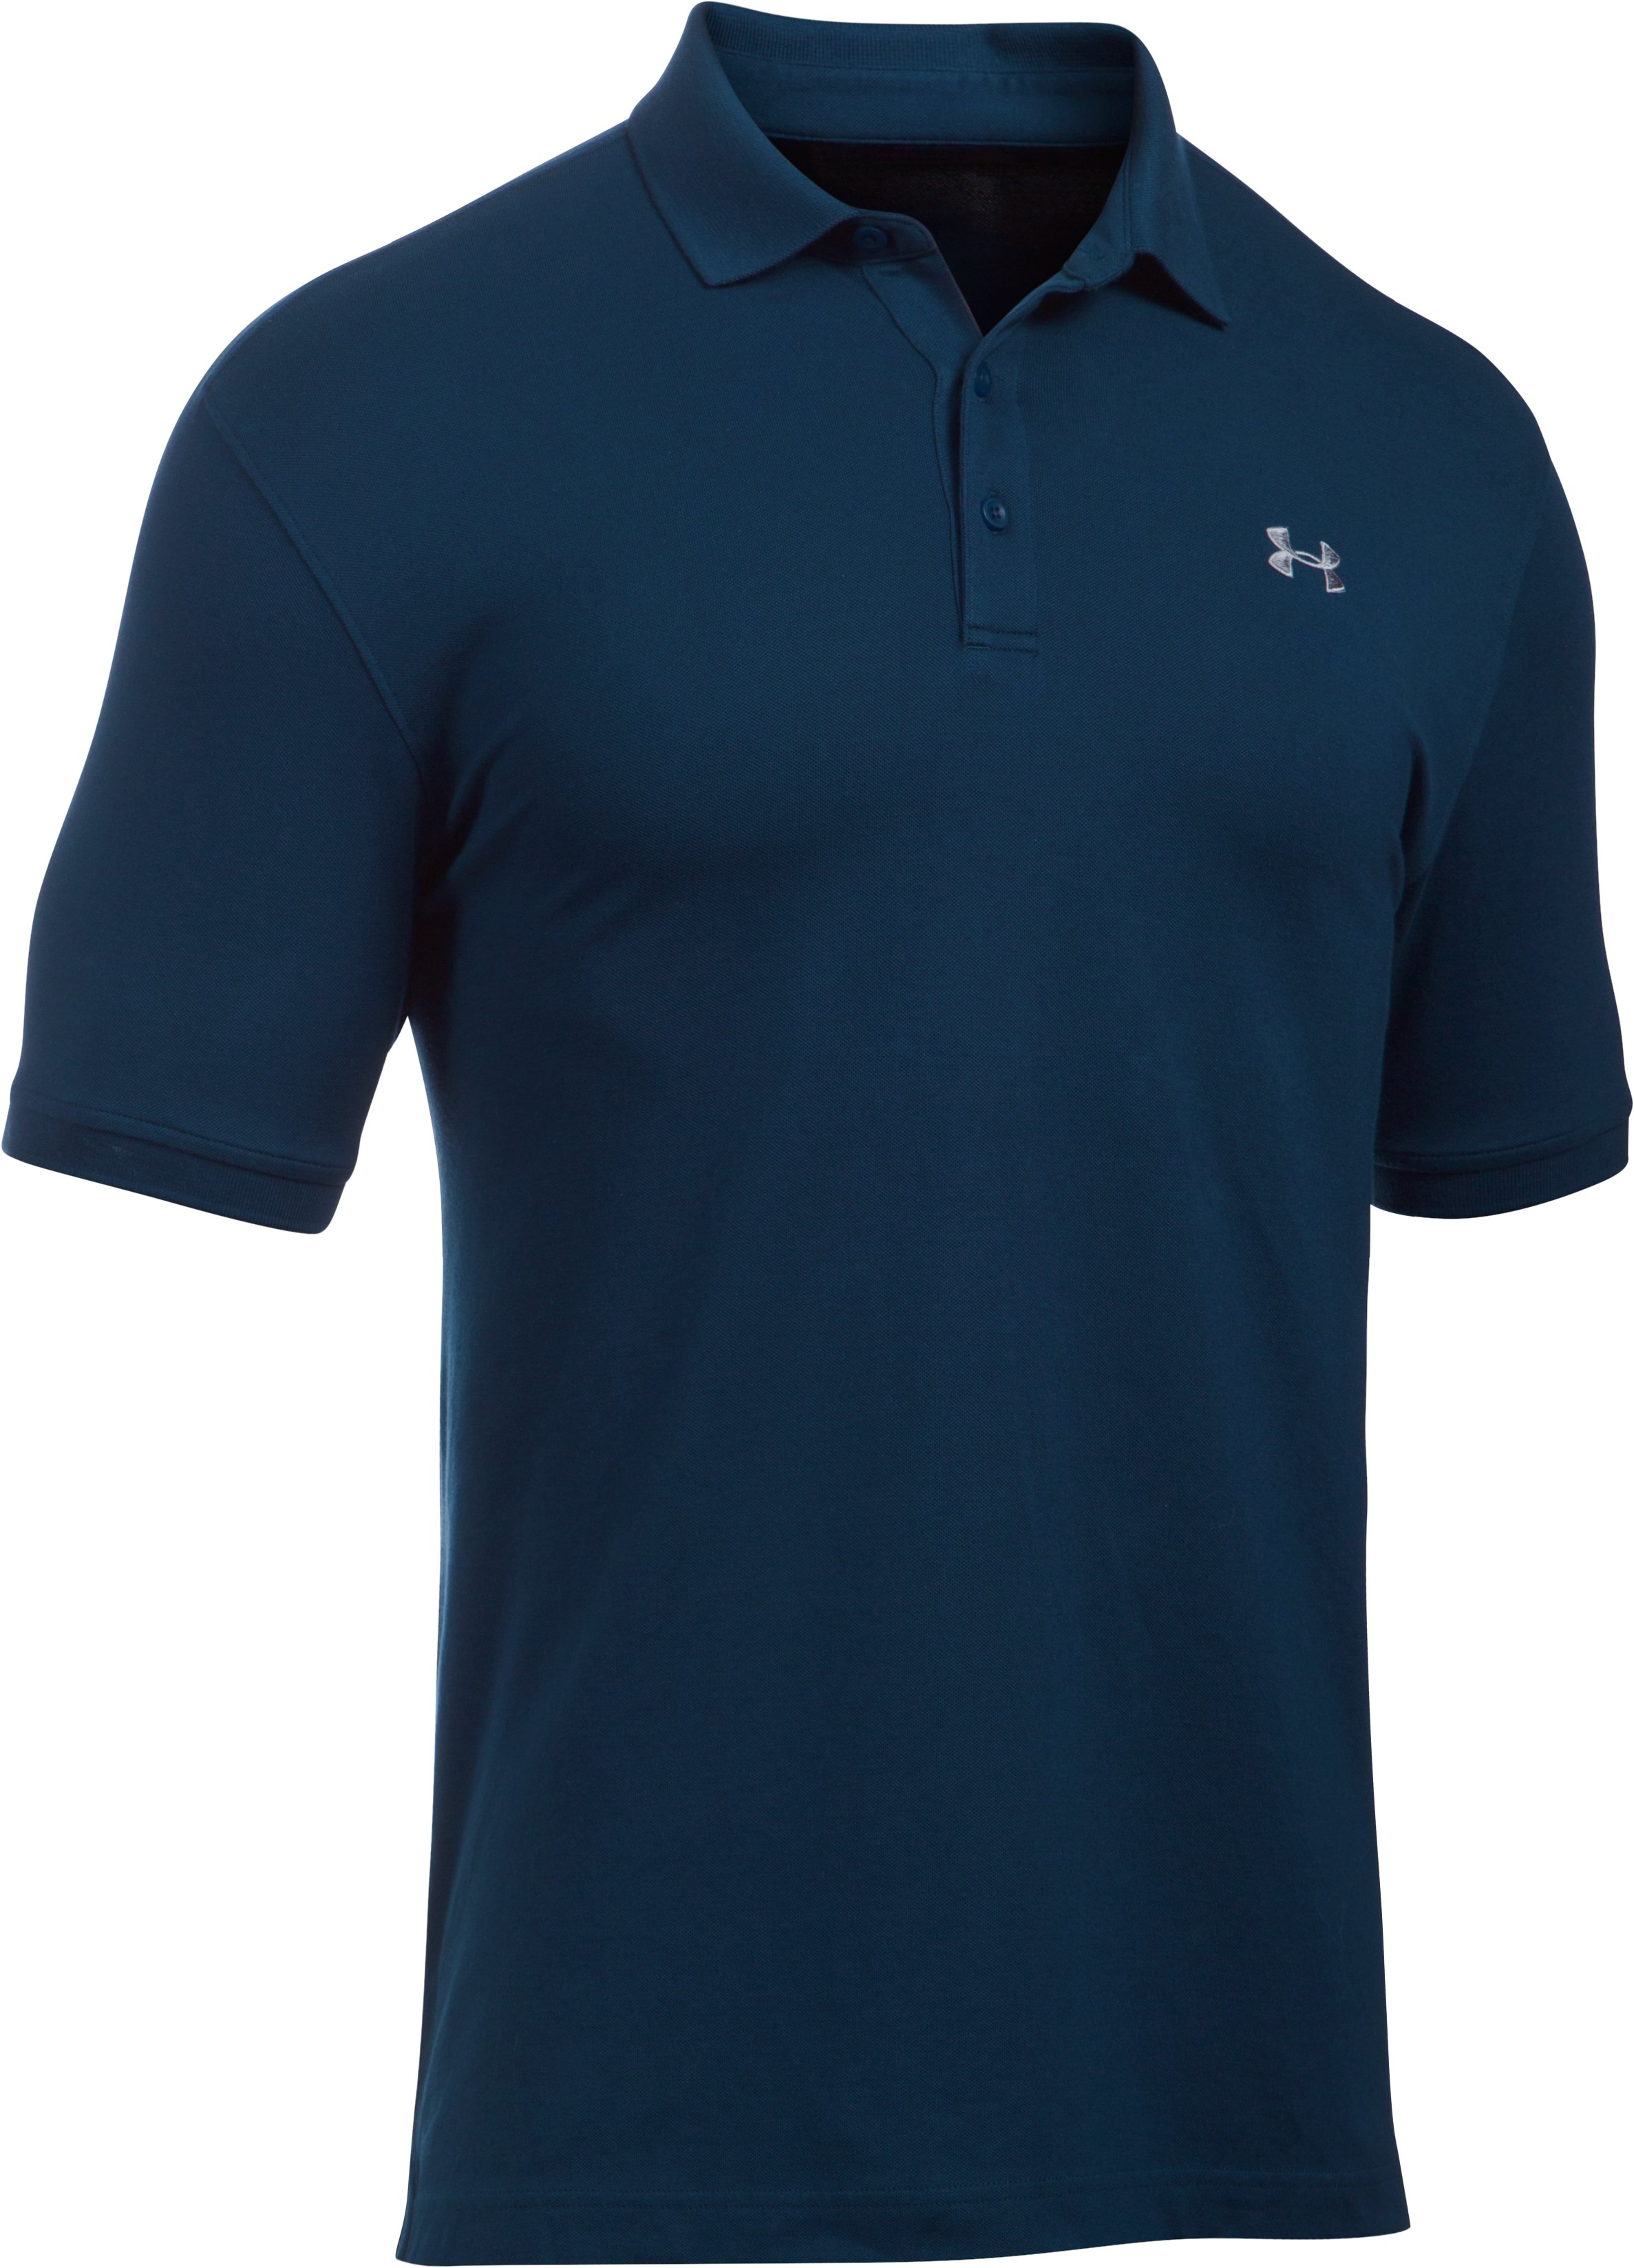 Men's UA Performance Cotton Polo, Academy, undefined